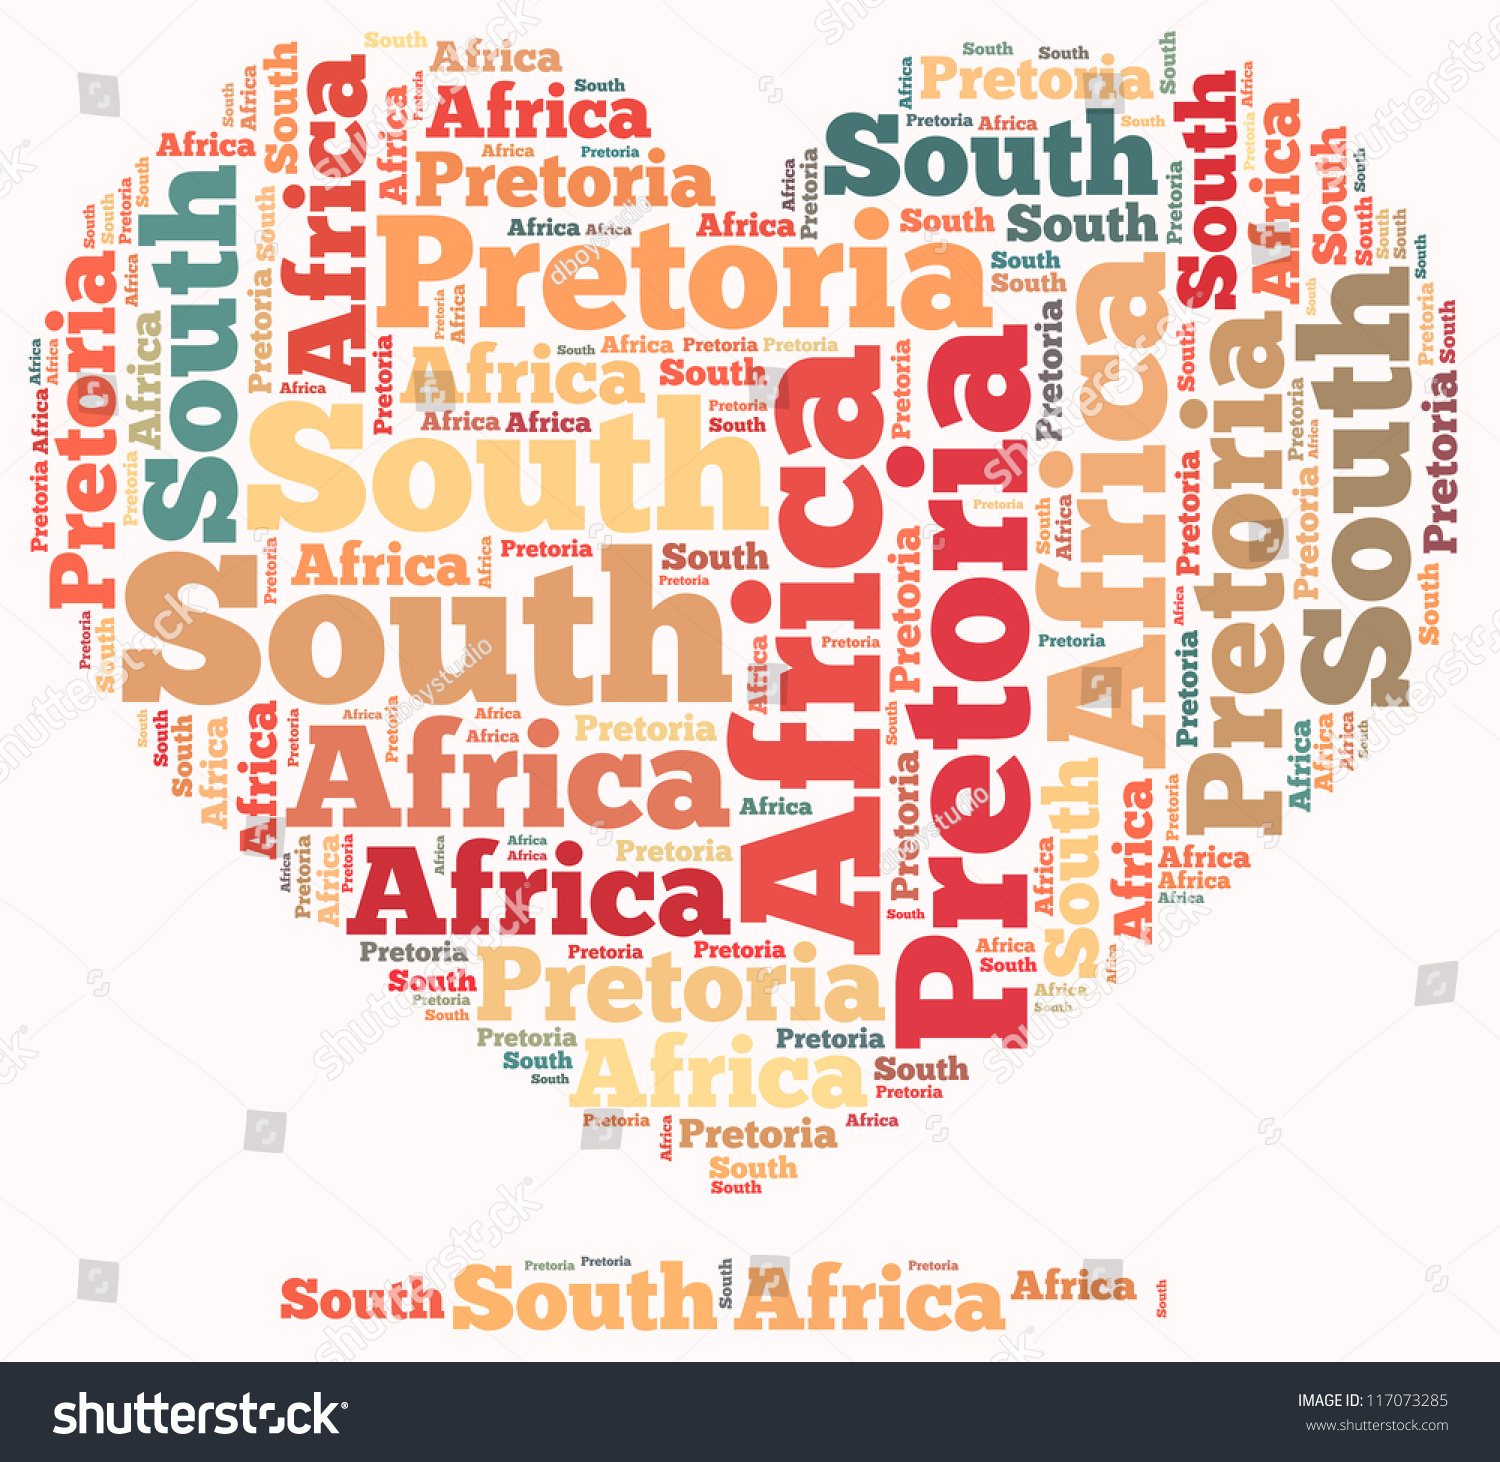 South Africa Info Text Graphics And Arrangement Concept On